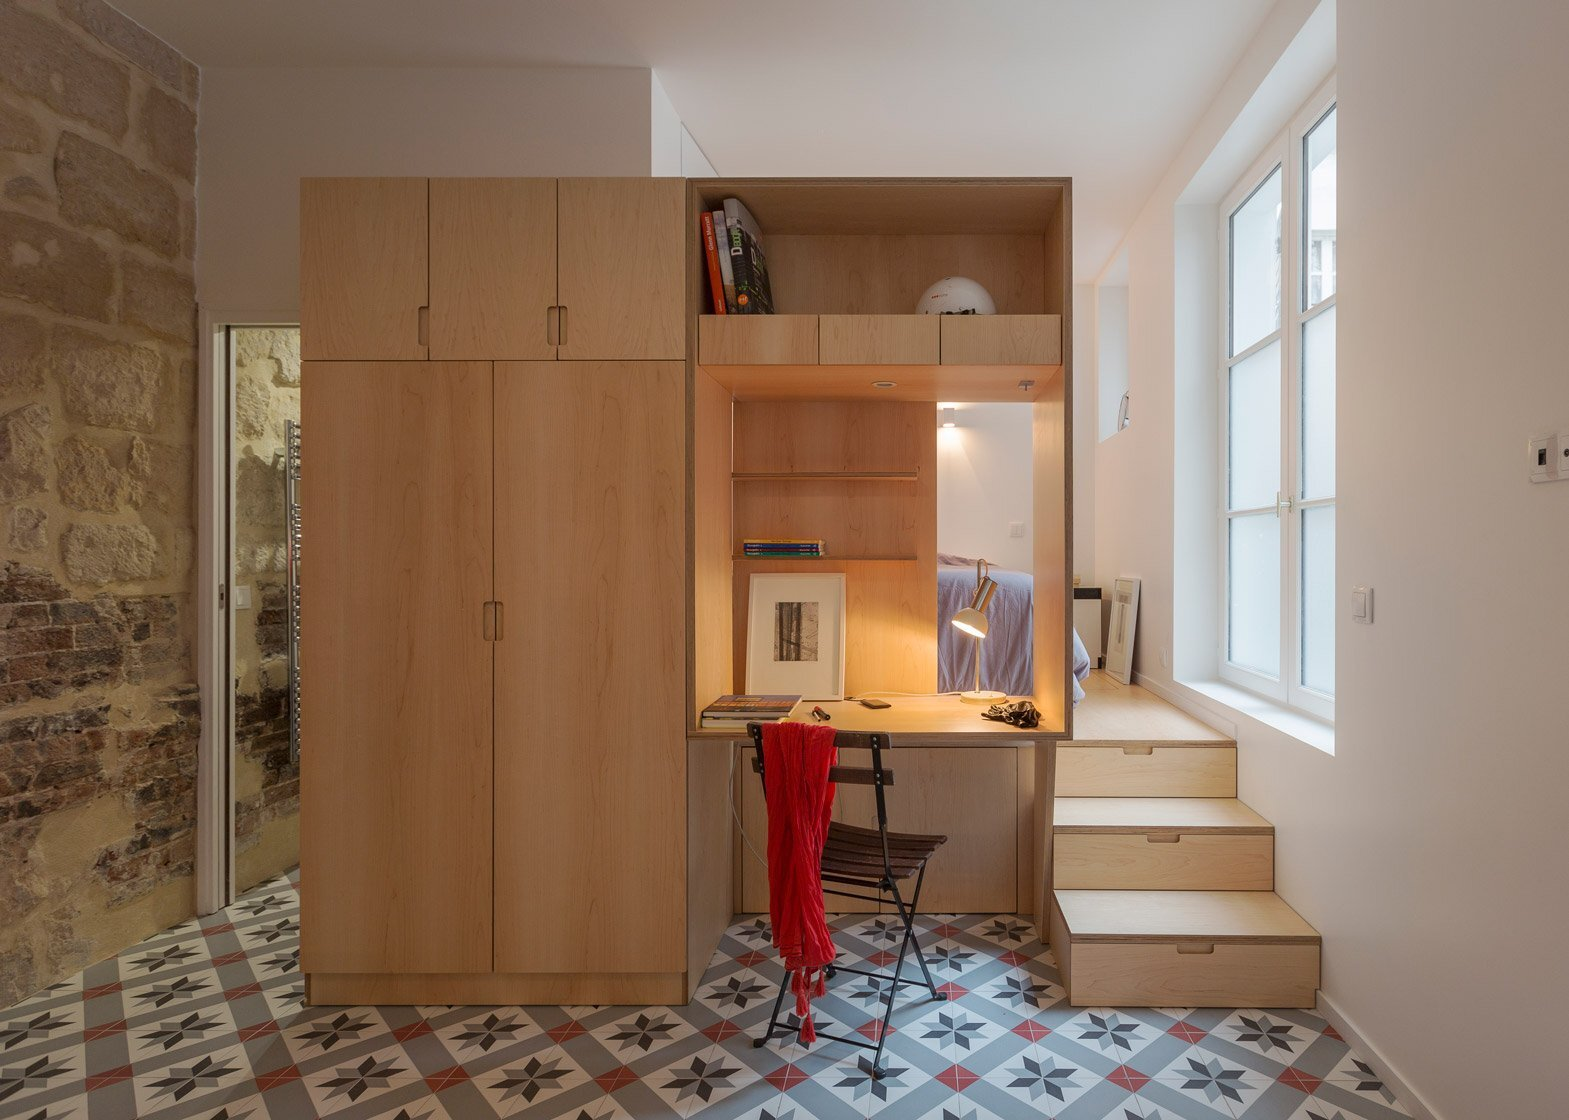 Tiny Apartment - Anne Rolland Architecte - Paris - Study - Humble Homes